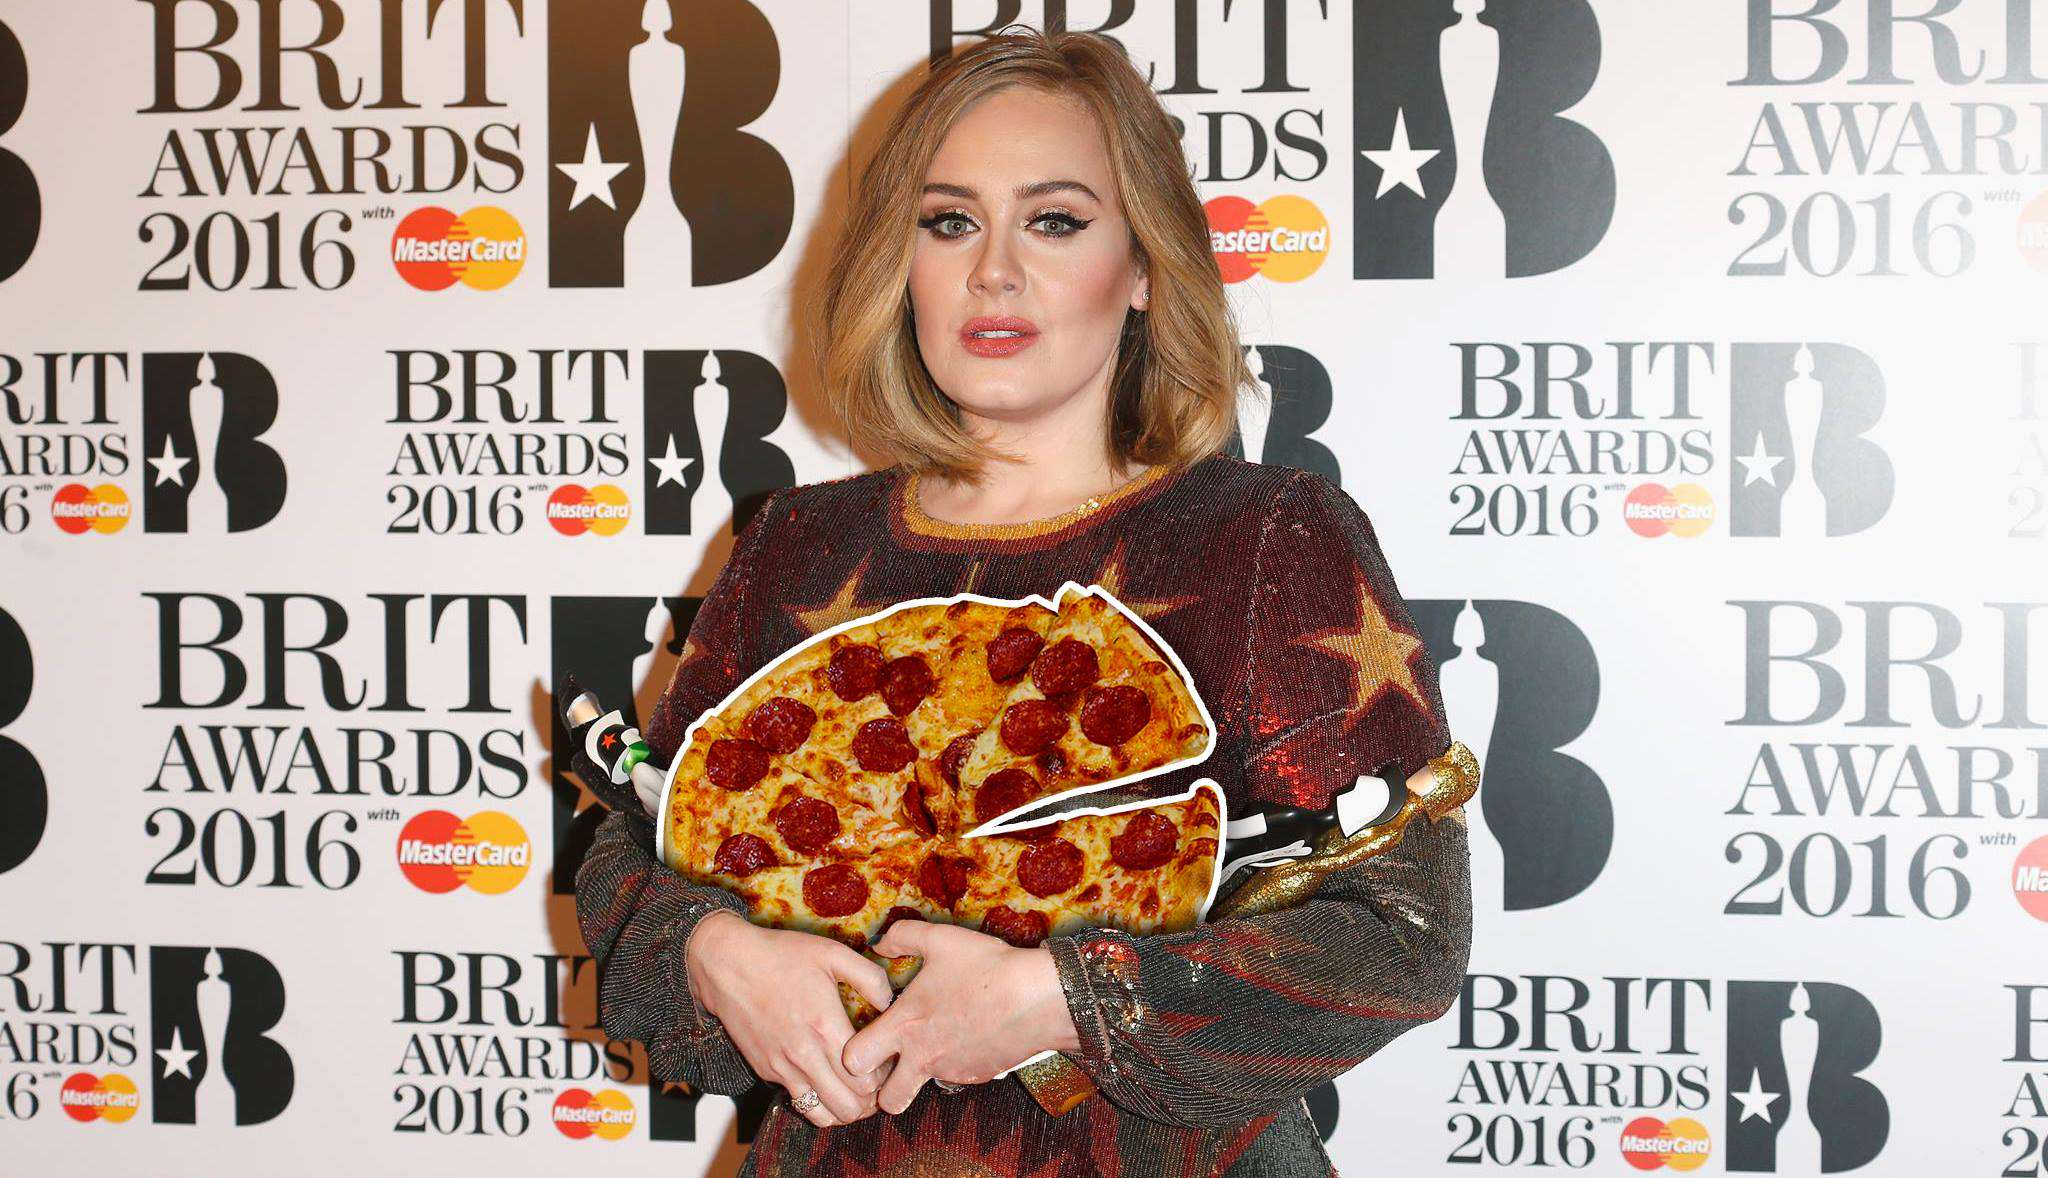 13639599 10157245652520604 408638861 o Adele Insists Hotel Staff Drive 140 Miles For Pizza, Doesnt Eat It